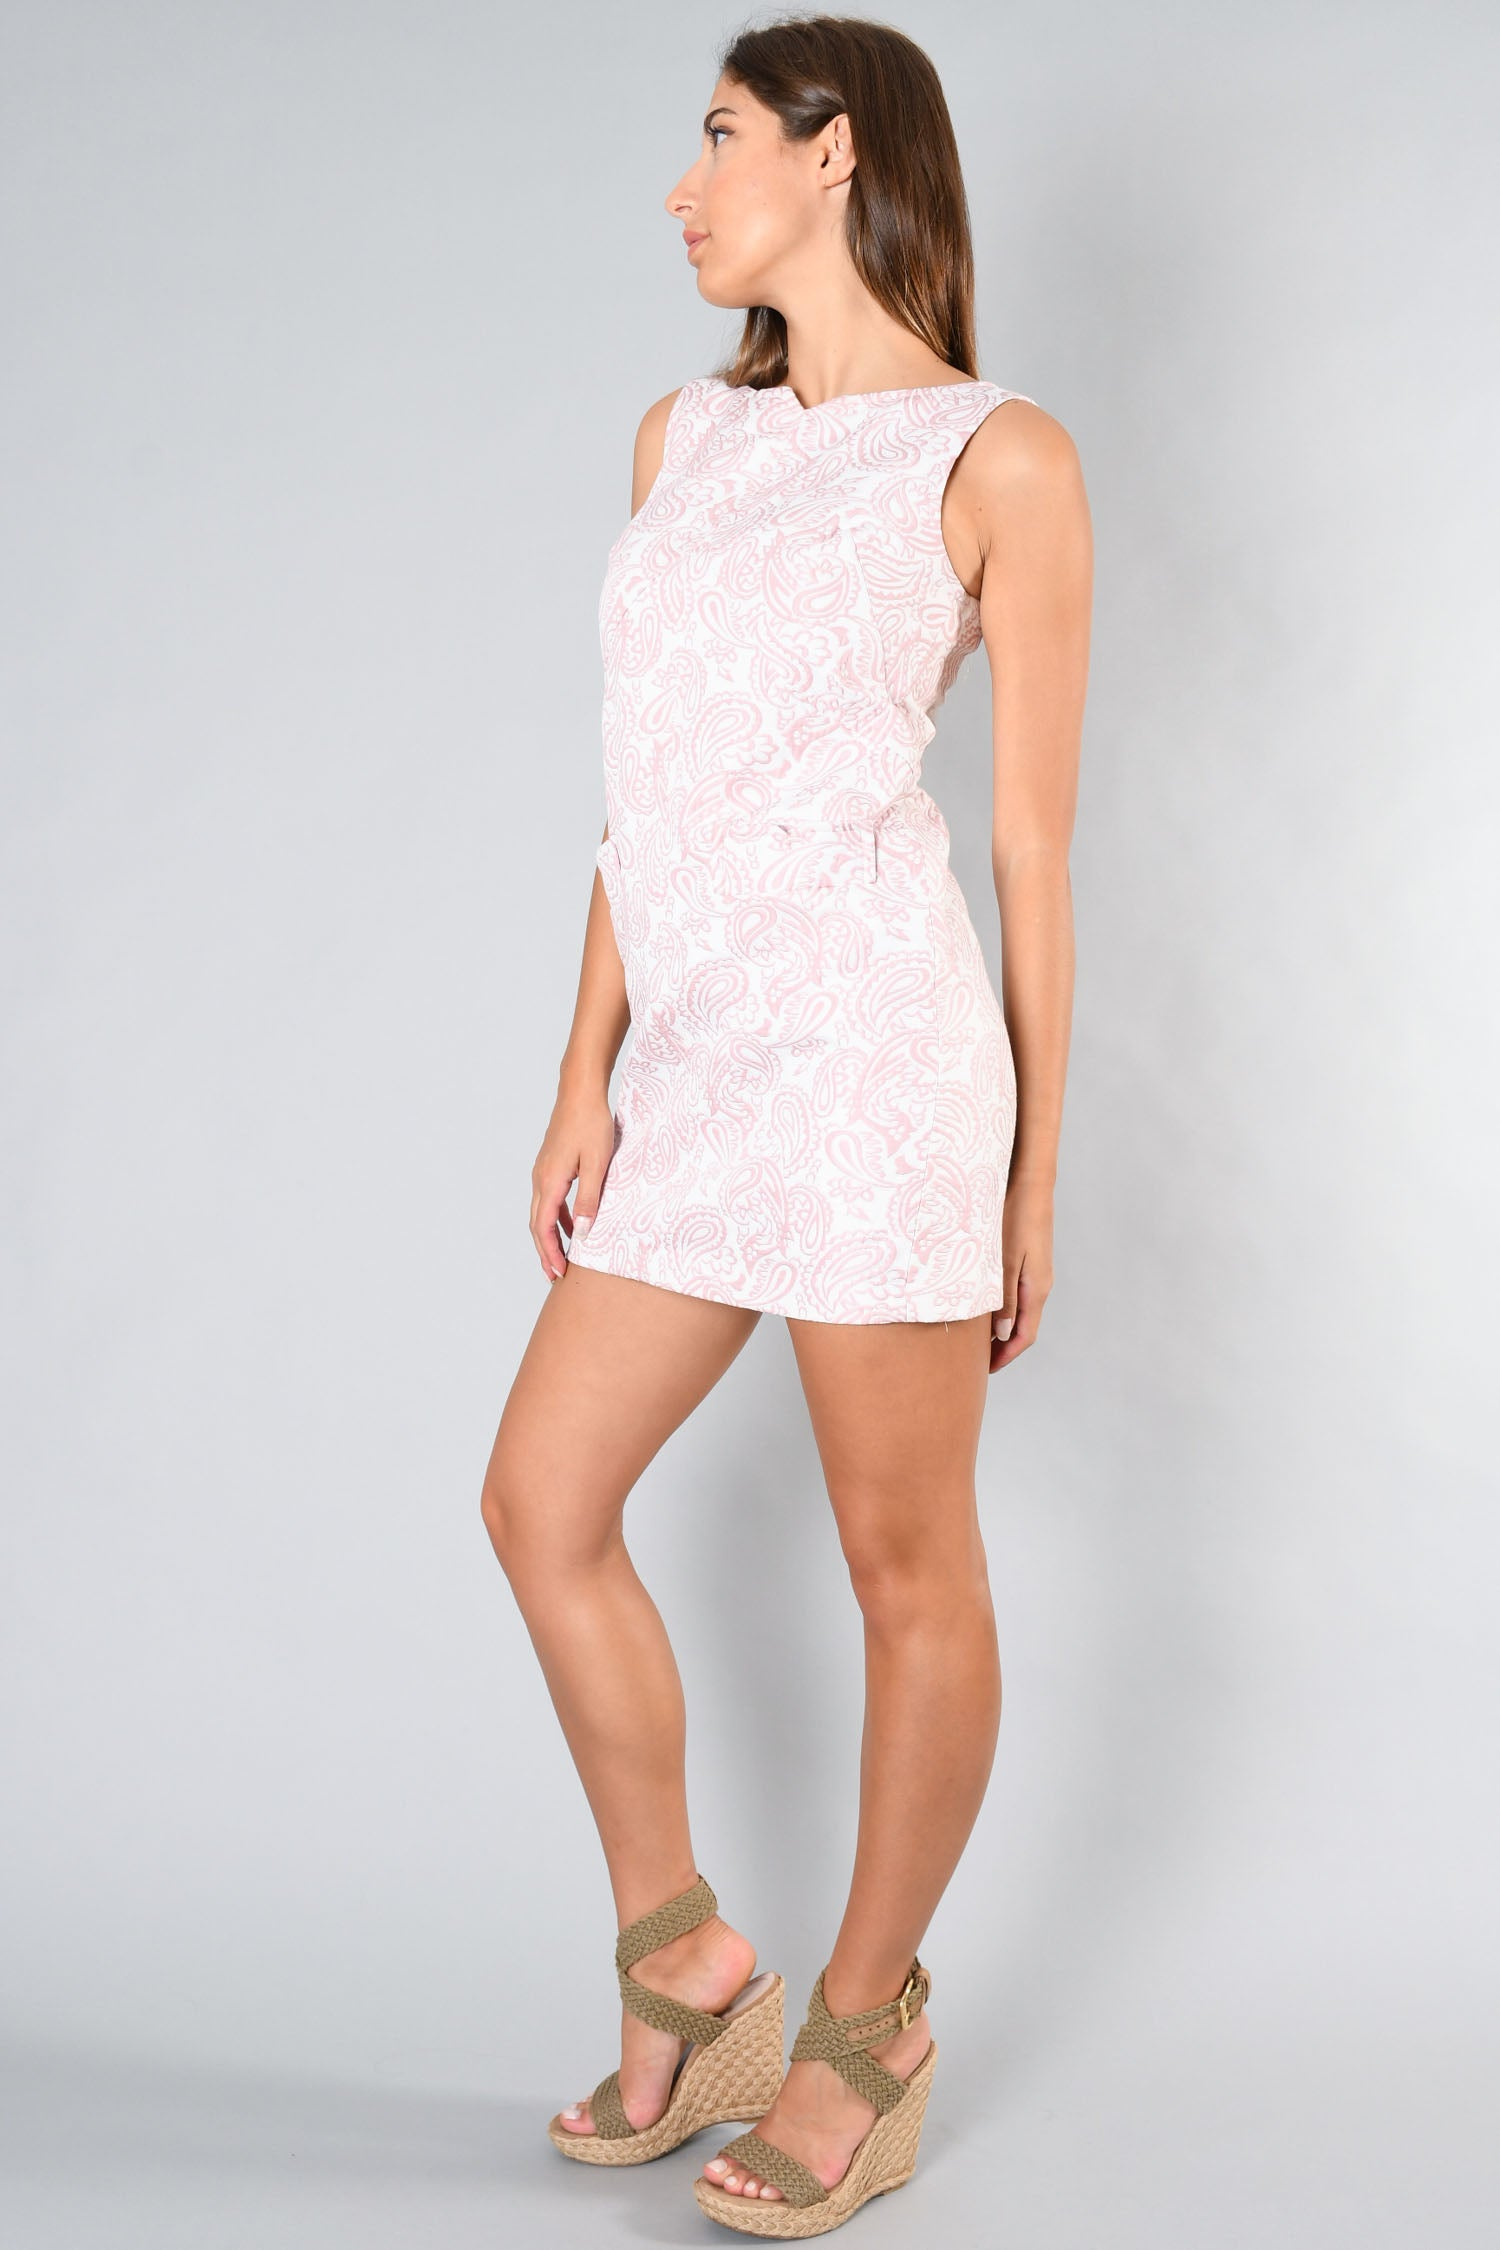 Victoria Beckham White/Pink Textured Paisley Sleeveless Dress Size S